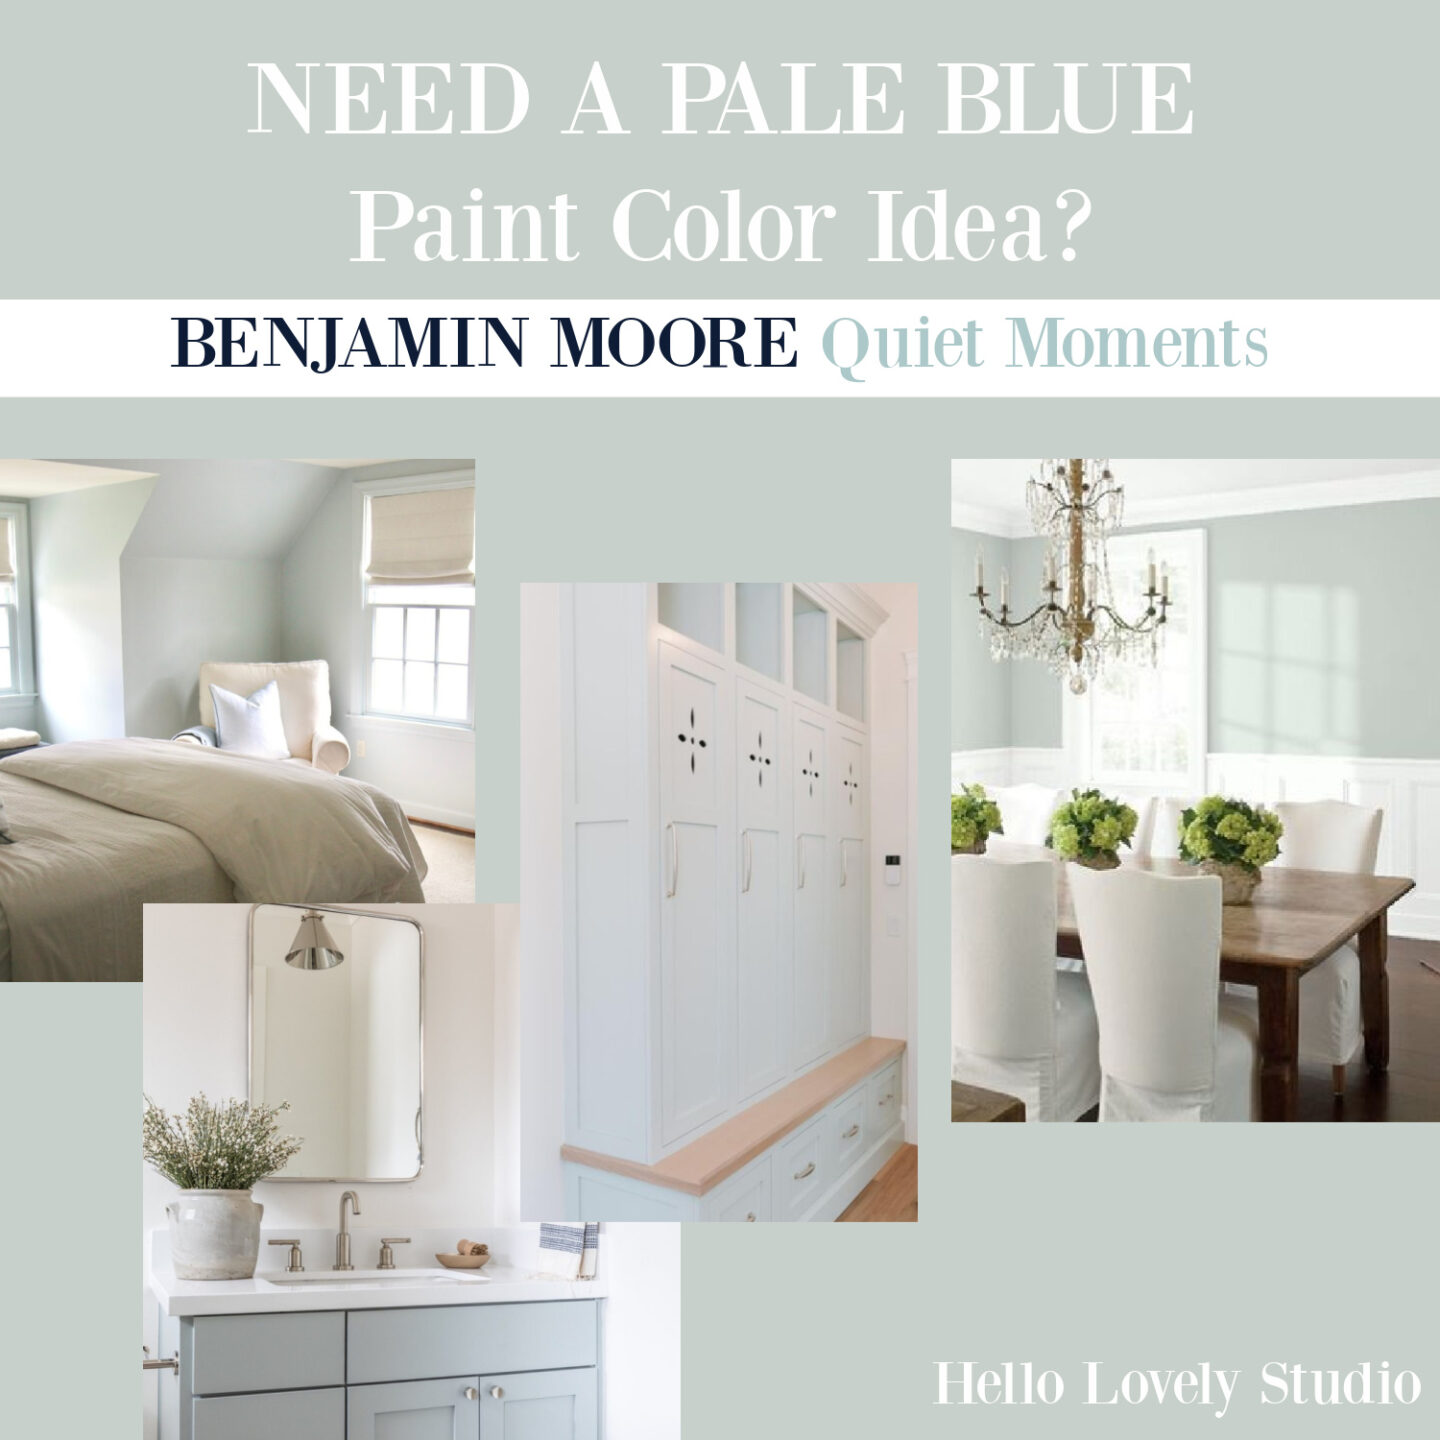 Need a pale blue paint color idea? Benjamin Moore Quiet Moments is a winner - come see on Hello Lovely. #paintcolors #lighblue #quietmoments